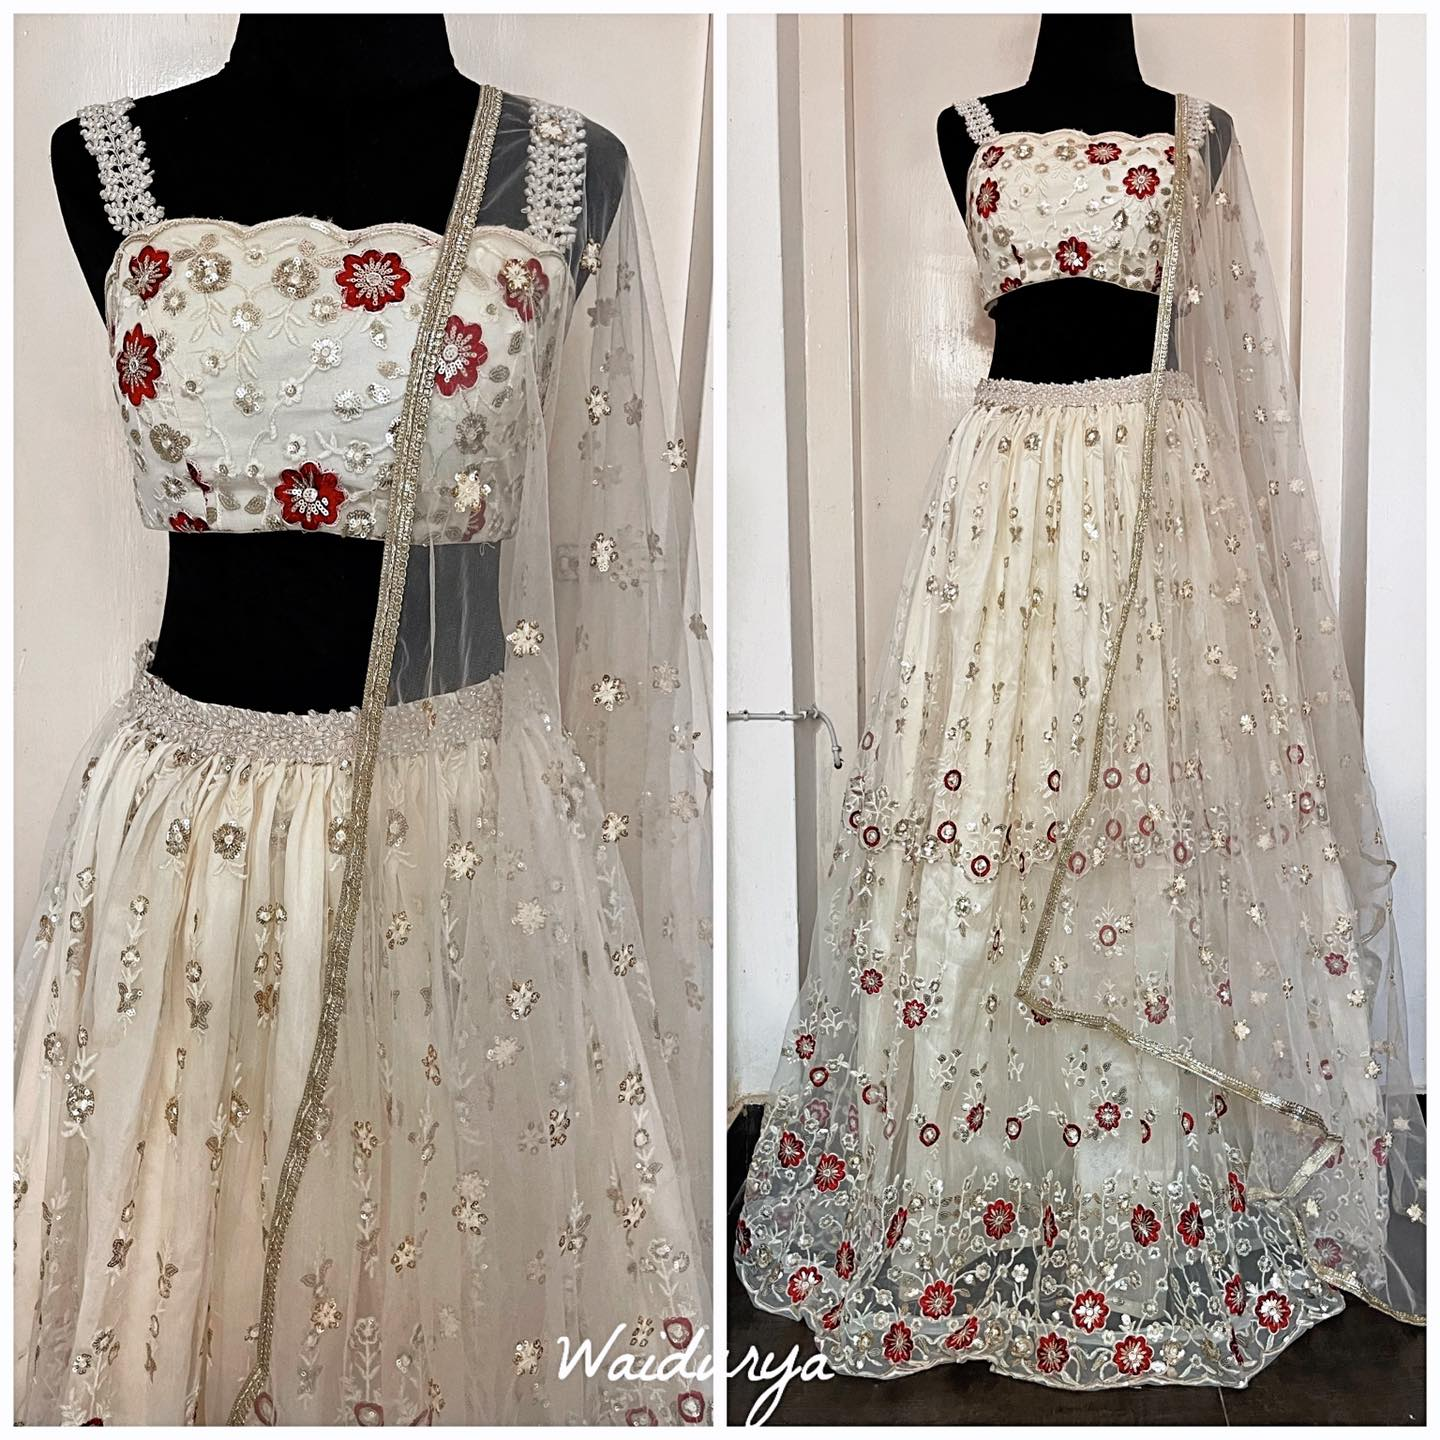 PARI is the ultimate simple bridal lehenga. It's that beautiful head turning yet demure look. It's an ivory and red beautifully embroidered floral design. The sequin and thread work embroidery is intricate and stunning. The lehenga is adorned with a hand worked pearl waist band and the blouse straps are also hand worked with pearls. The dupatta is a soft net hun ivory with thread and sequin embroidered flower motifs all over. The border is a dull gold textured one. Love this whole look!!!! 2021-10-15